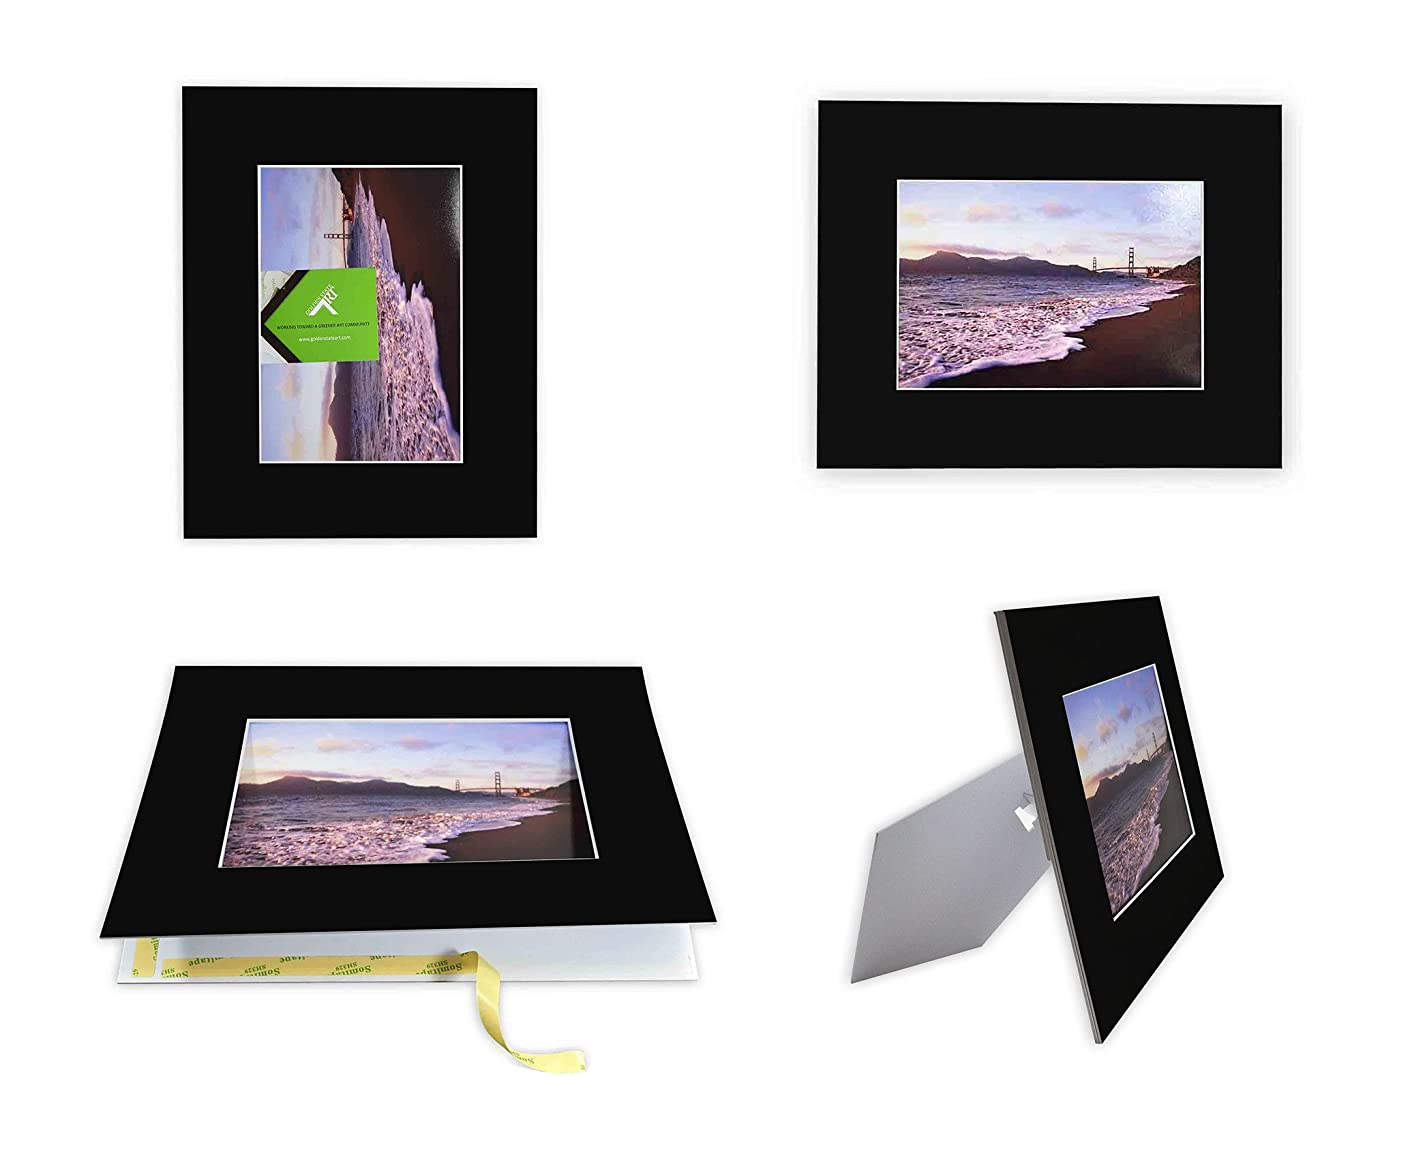 Golden State Art Pack of 10 Black 8x10 Self-Assemble Photo Mat for 5x7 Picture with Backing Board pre-gummed W/Easel Display Stand, Includes 10 Clear Bags